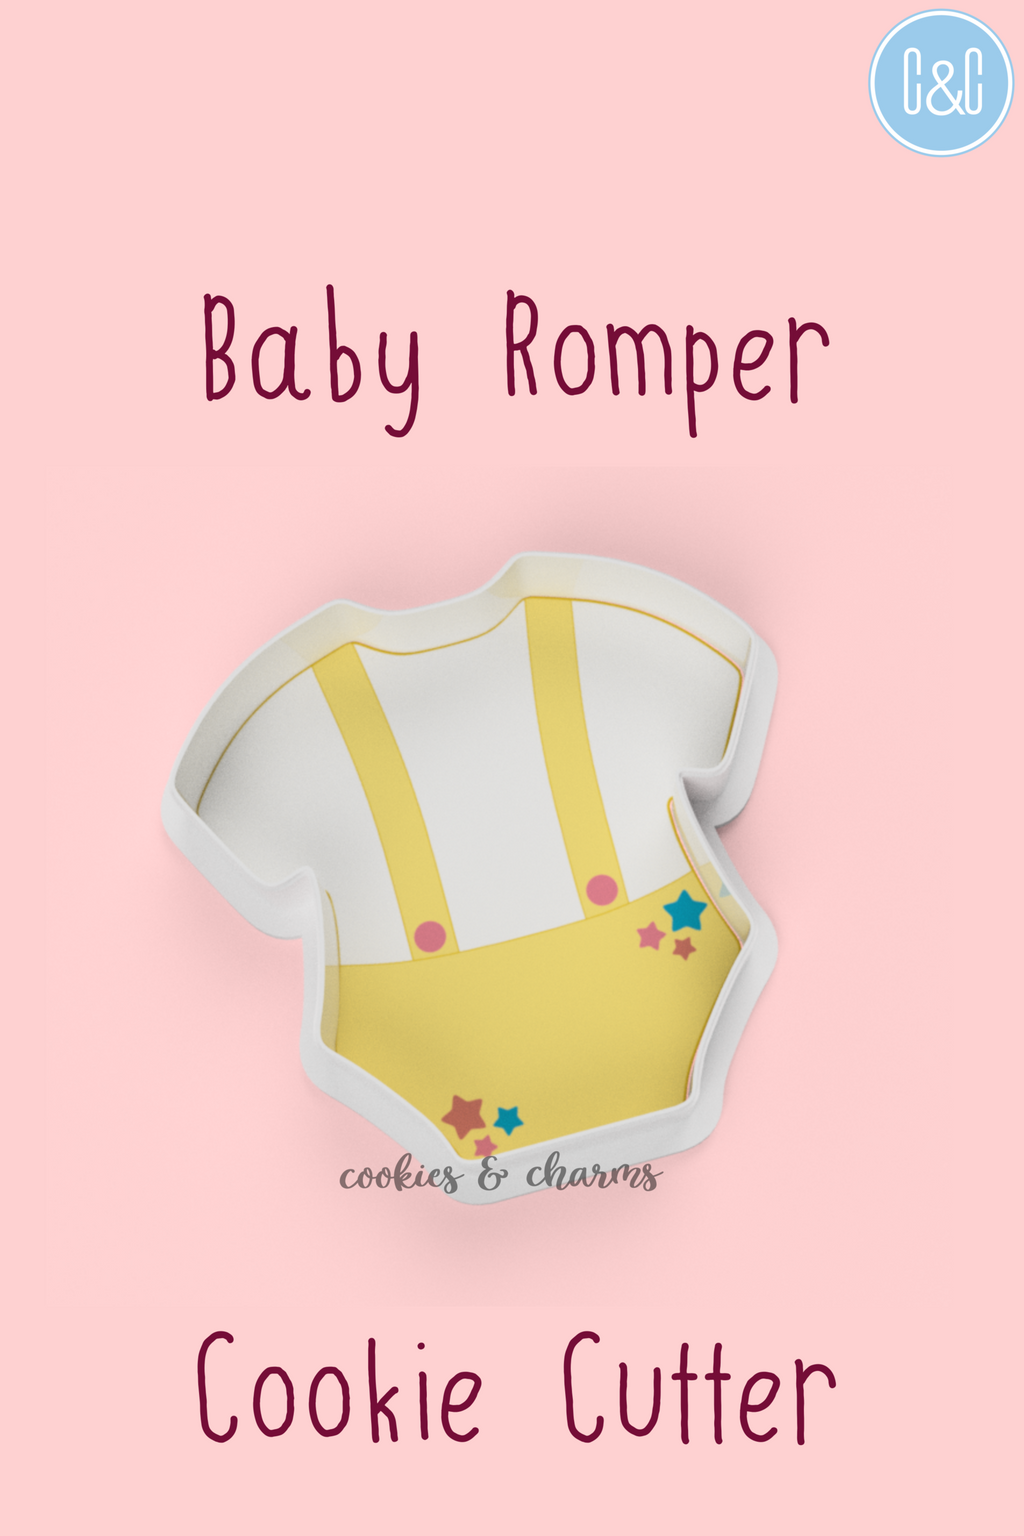 Baby romper cookie cutter.png